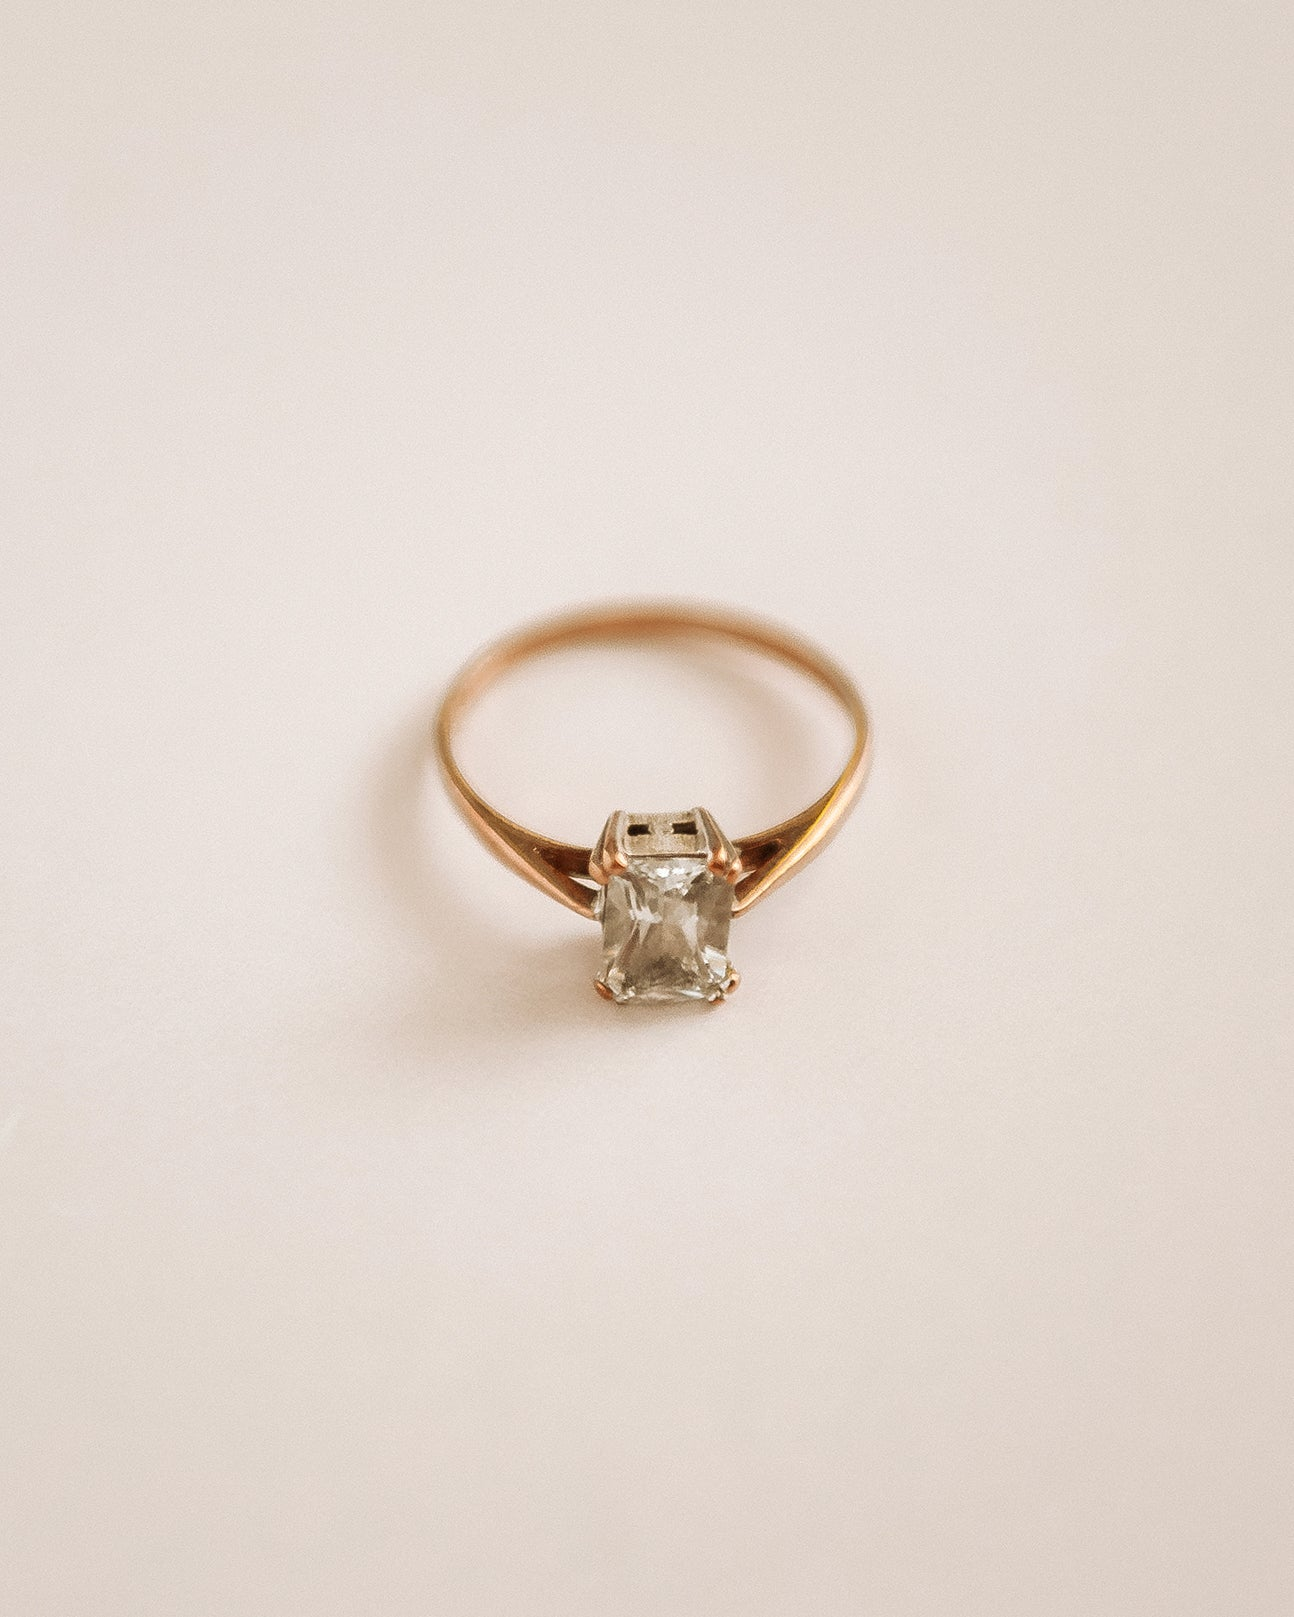 Image of Ethel 9ct Gold Emerald Cut Cocktail Ring